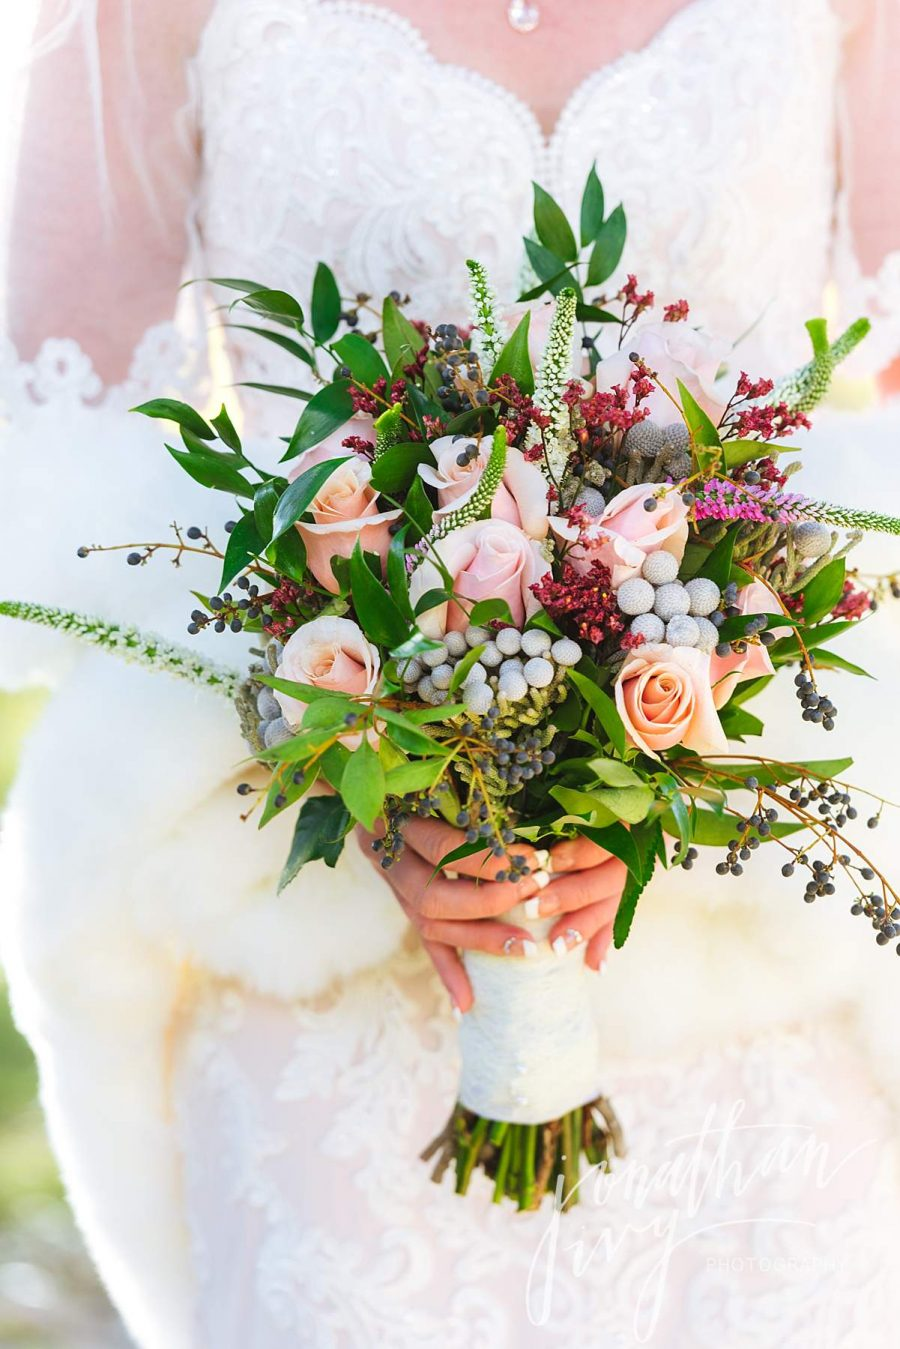 Winter Wildflower Bridal Bouquet with Roses